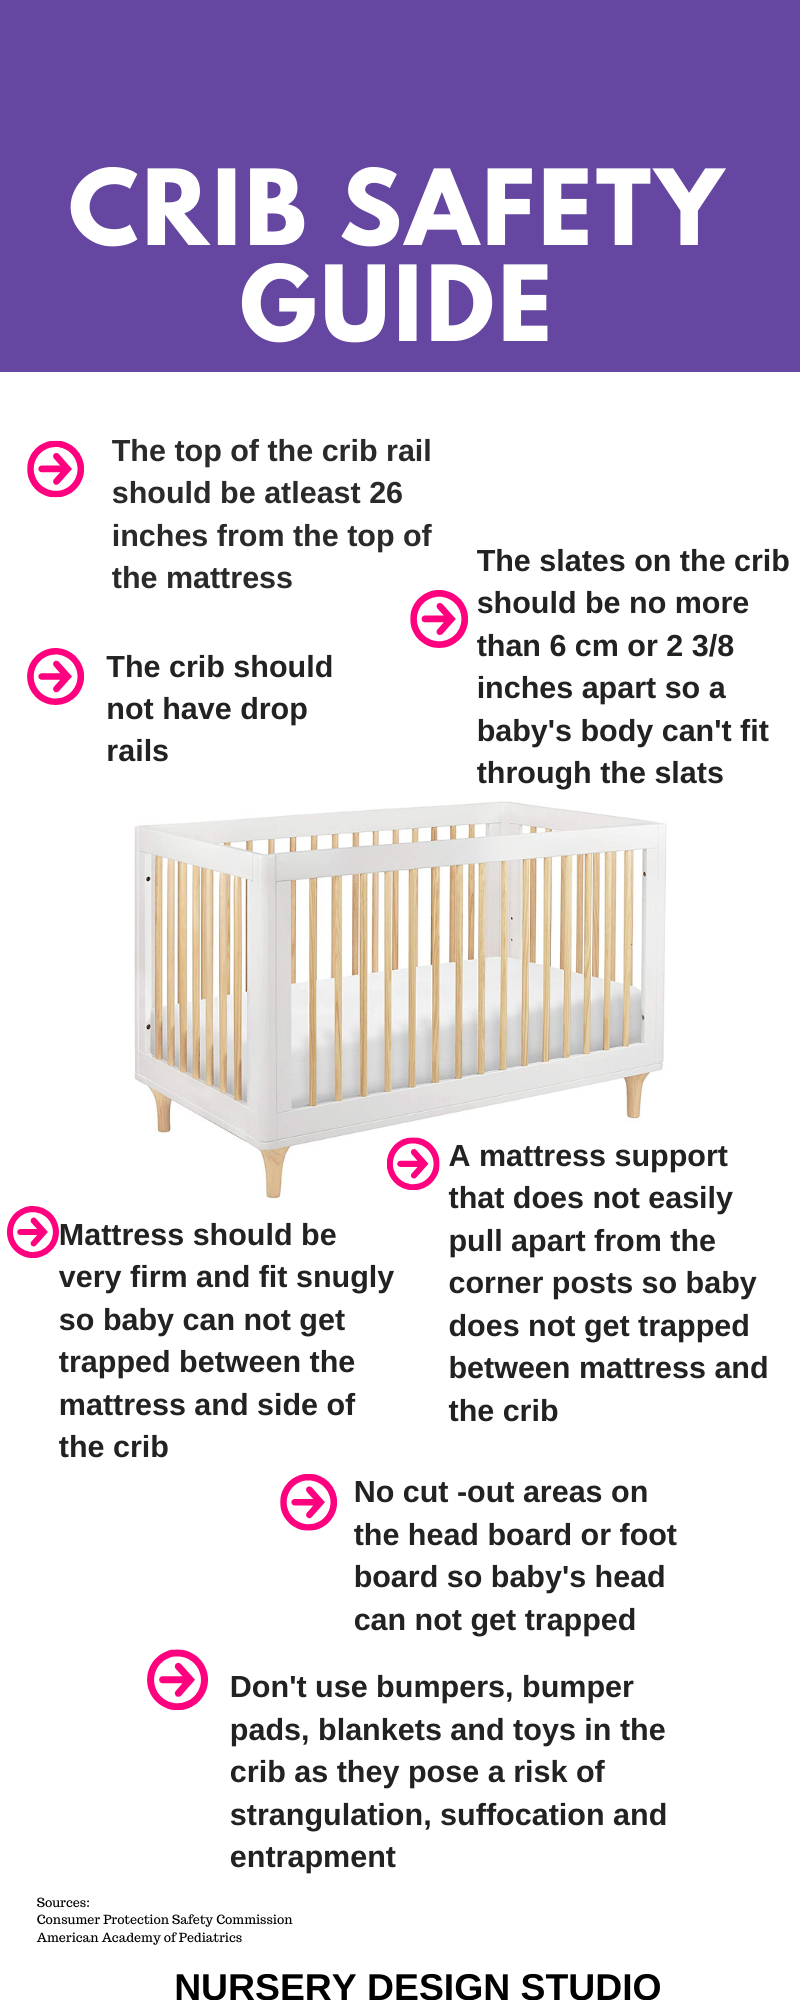 CRIB SAFETY GUIDE